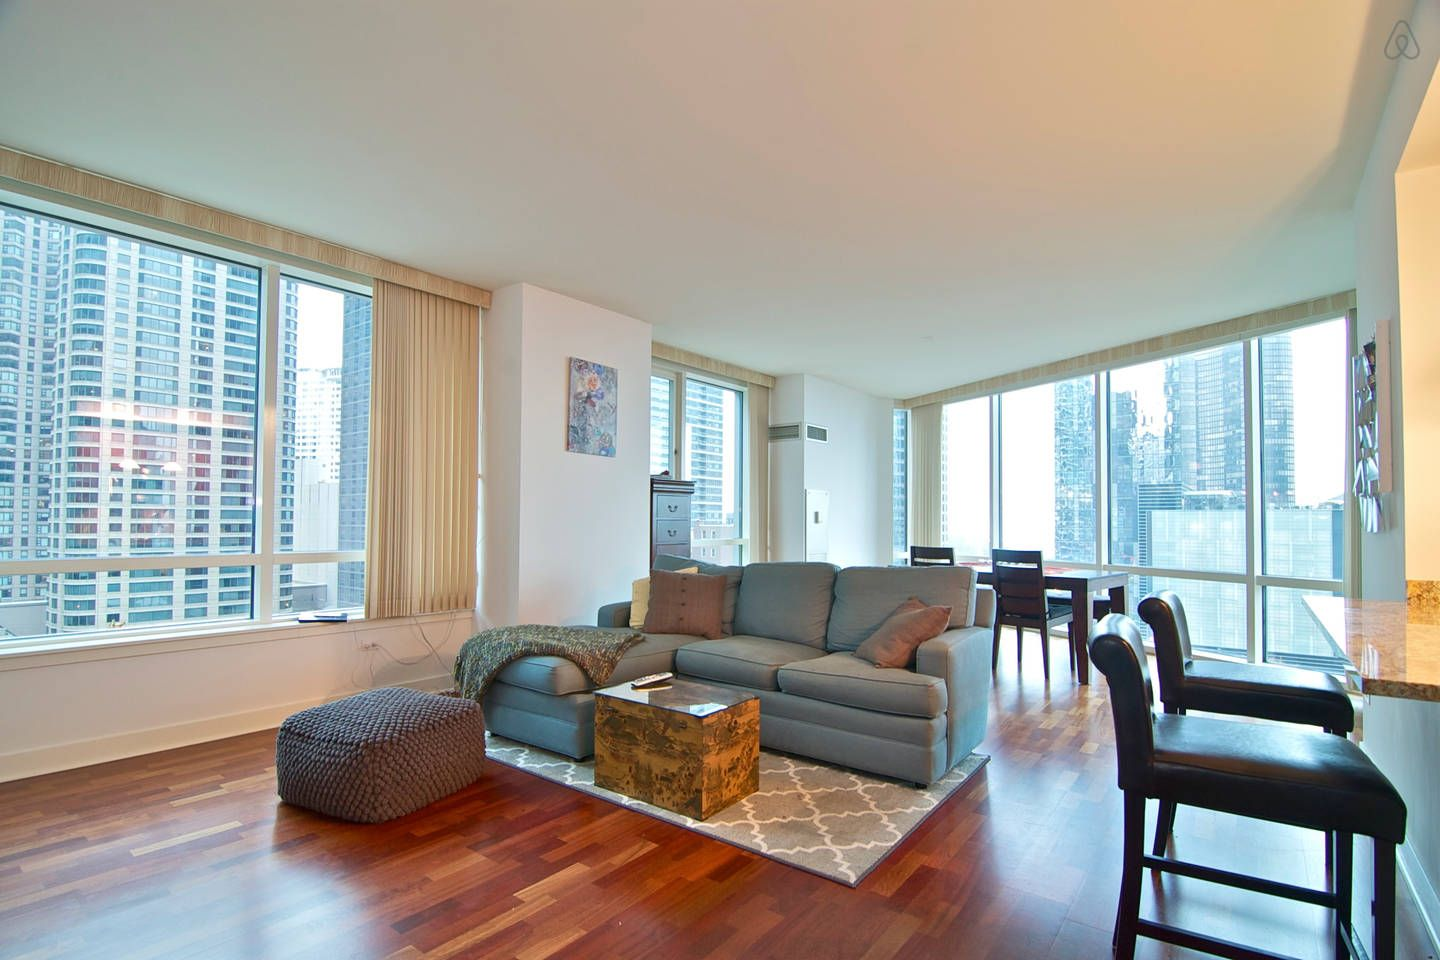 Lake View Navy Pier 2 Bed 2 Bath In Chicago Vacation Home Home Chicago Vacation